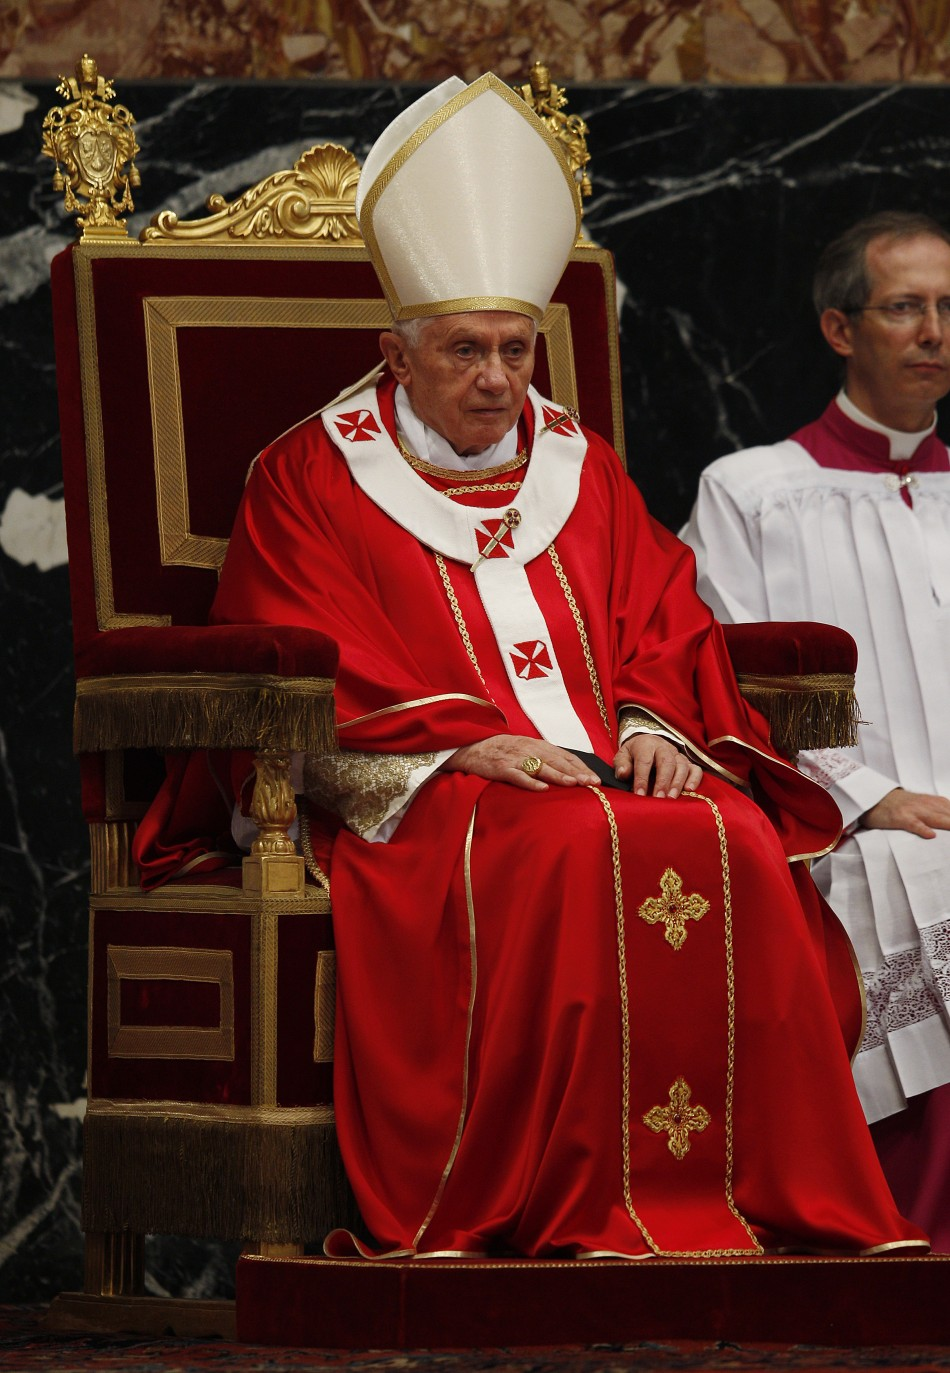 Pope Benedict XVI celebrates a mass to commemorate cardinals and bishops who died this year, in St. Peter's Basilica at the Vatican